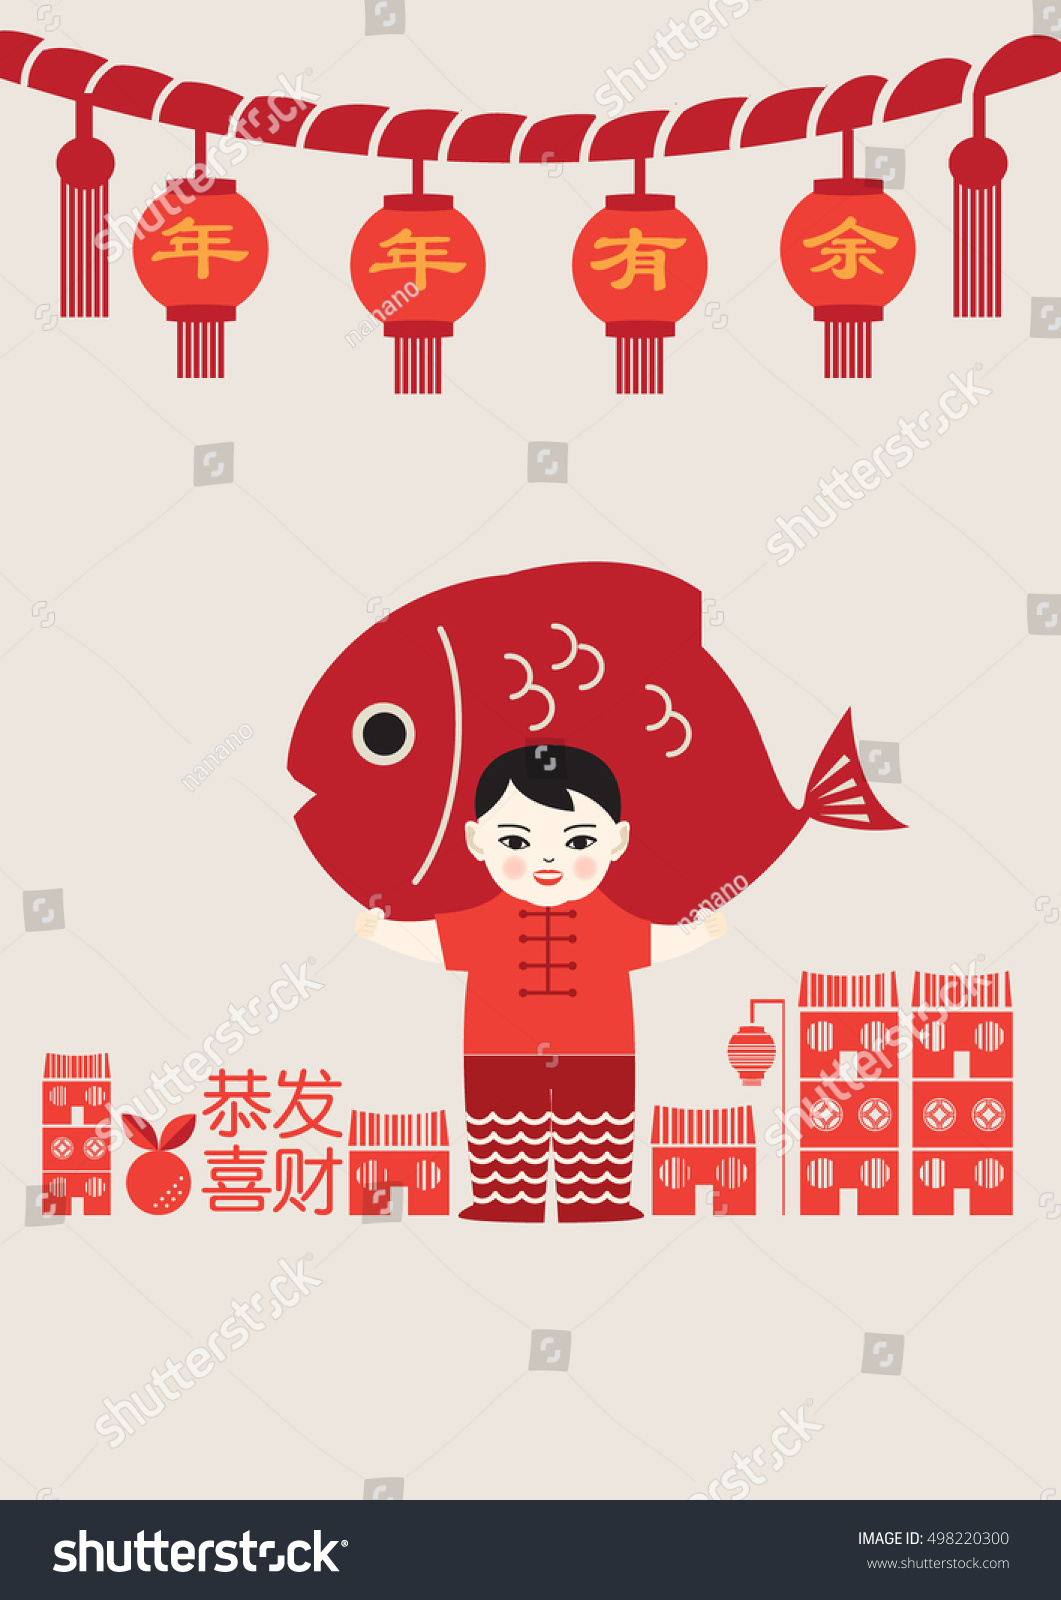 Vintage Chinese Calendar : Vintage chinese new year poster illustration stock vector